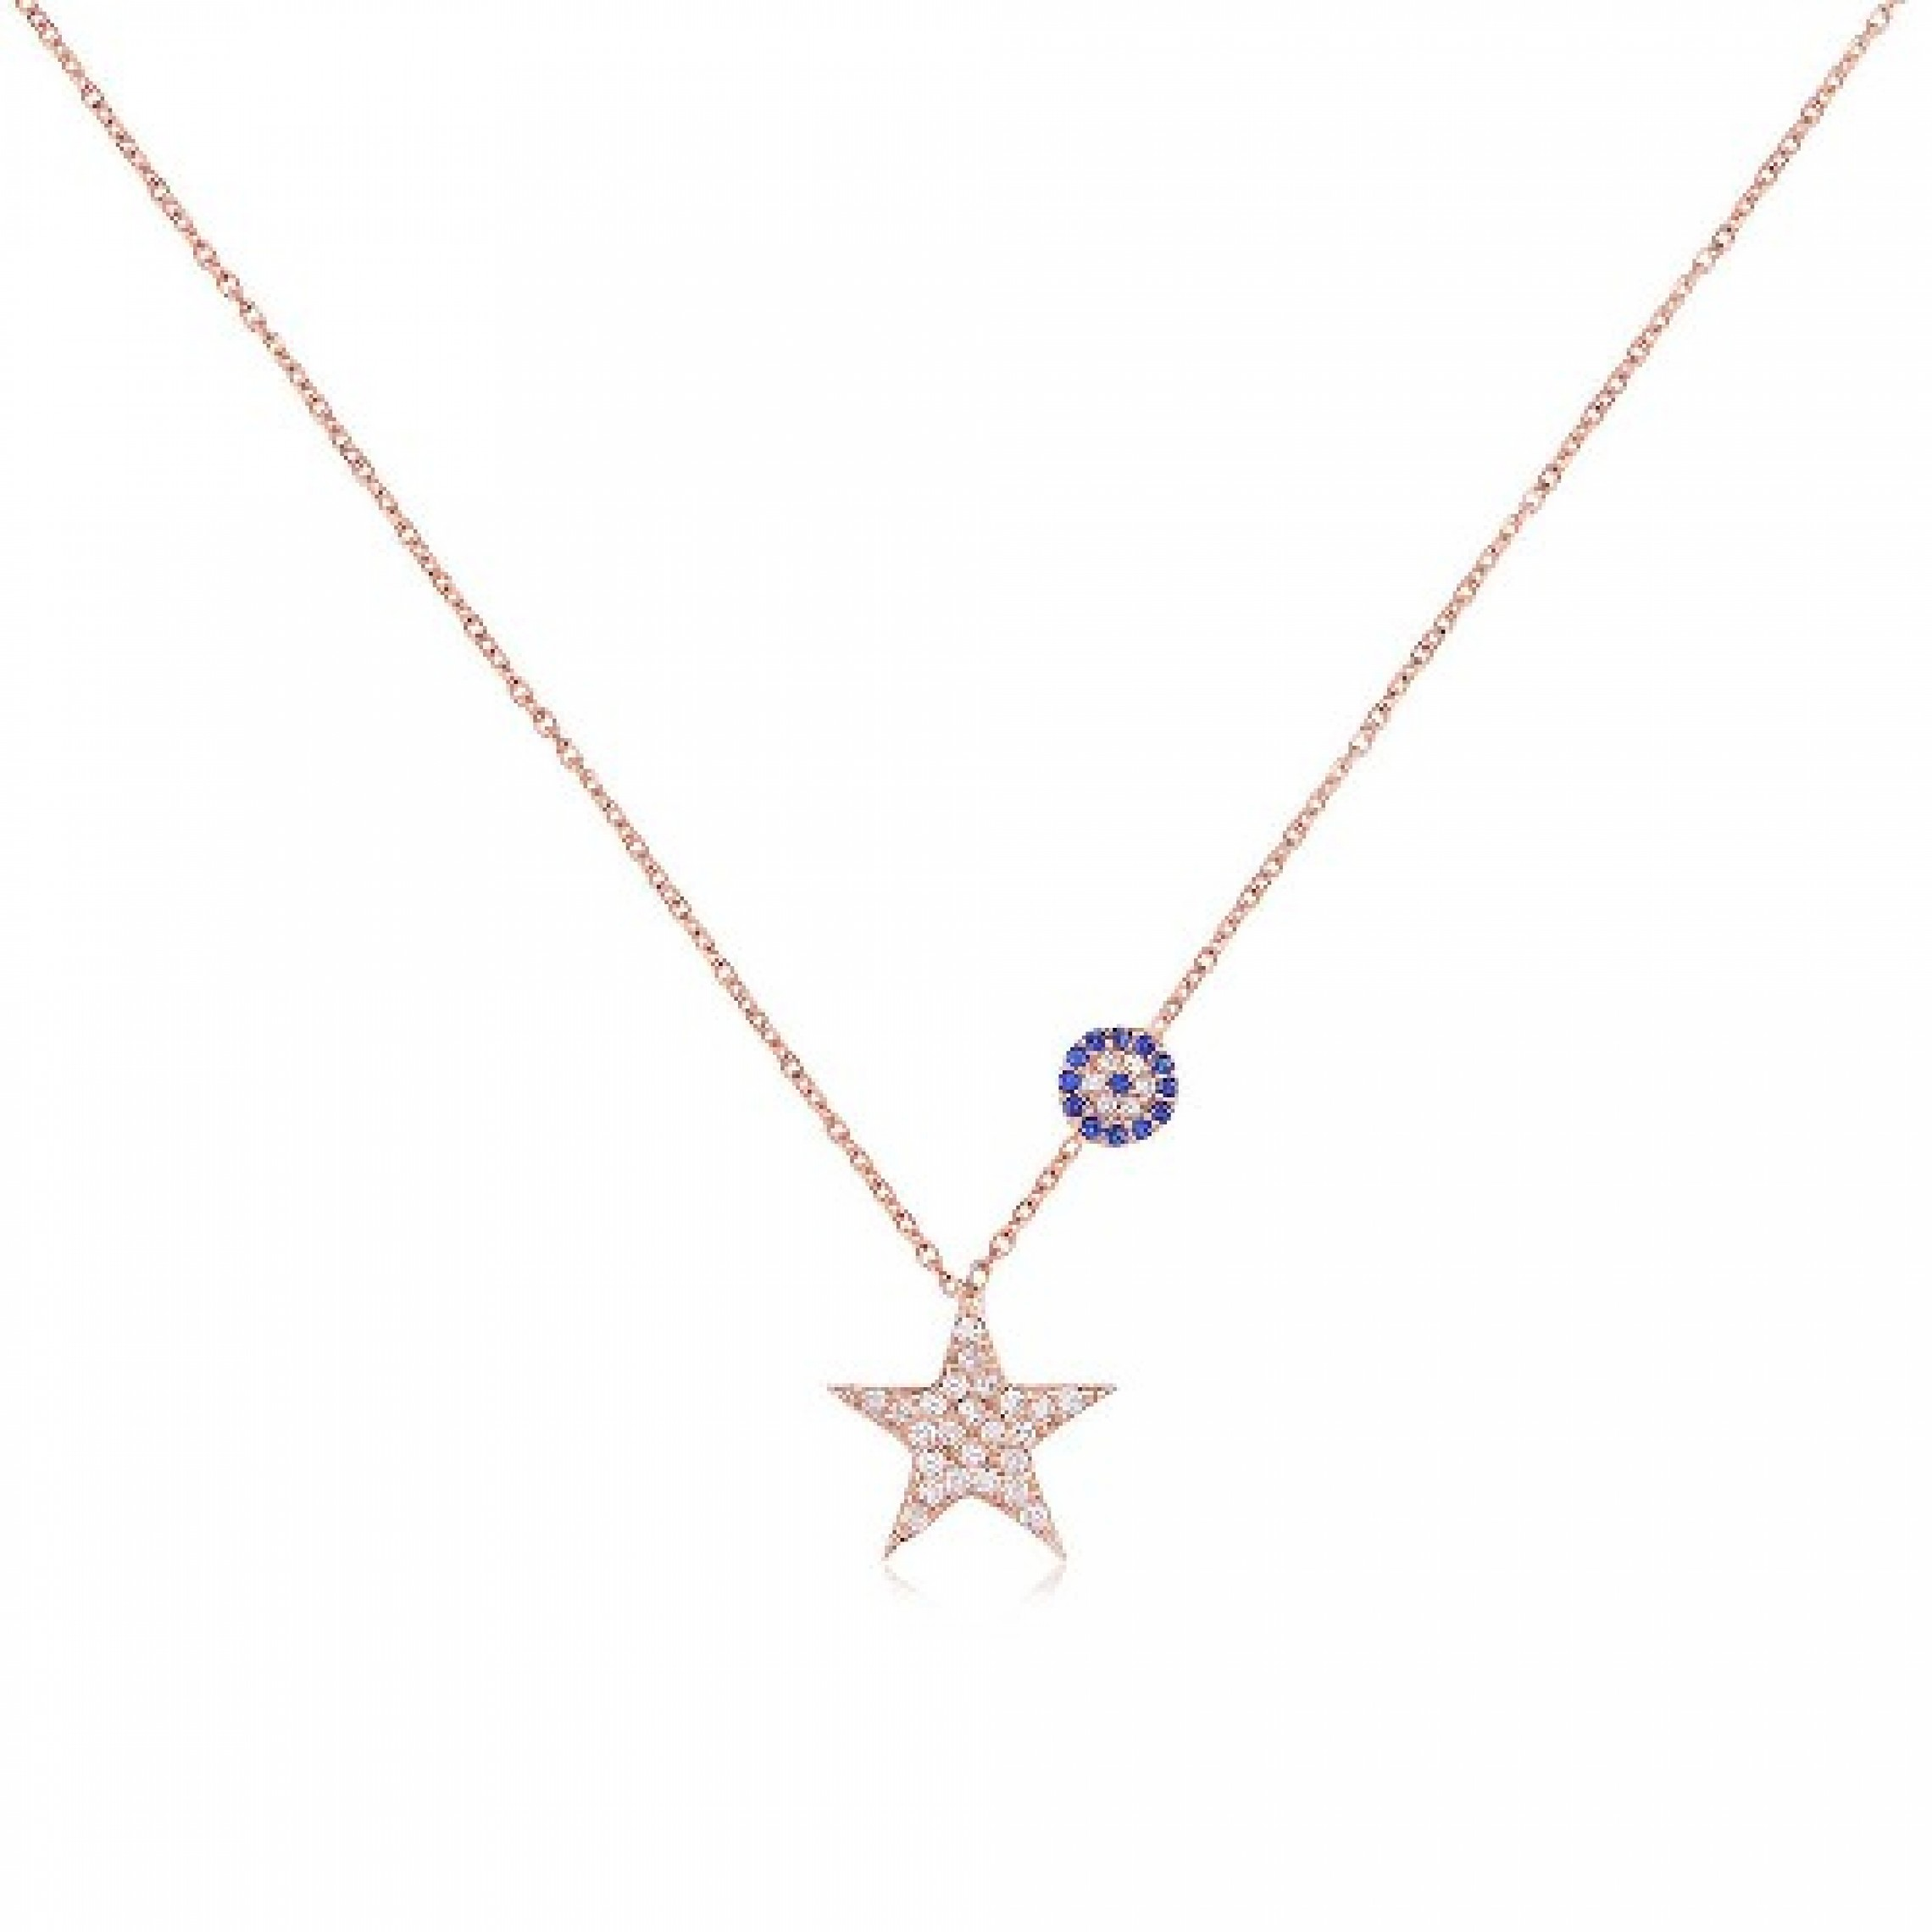 JN-190157 Evil Eye 925 Sterling Silver CZ Necklace Star